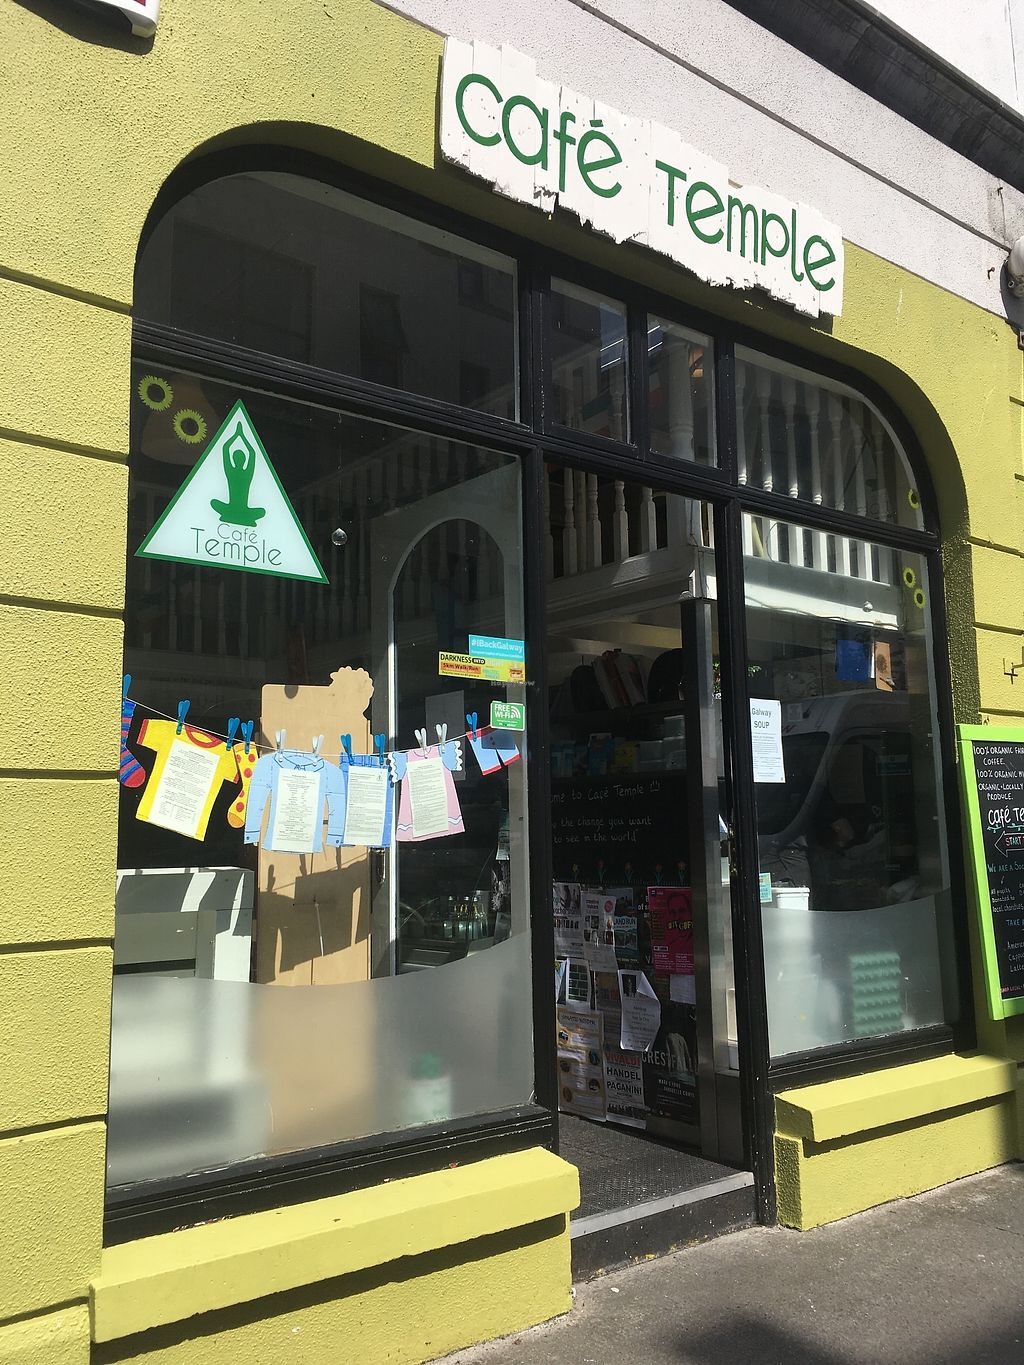 """Photo of Cafe Temple  by <a href=""""/members/profile/phashonkat"""">phashonkat</a> <br/>The front of the cafe <br/> July 25, 2017  - <a href='/contact/abuse/image/77378/284581'>Report</a>"""